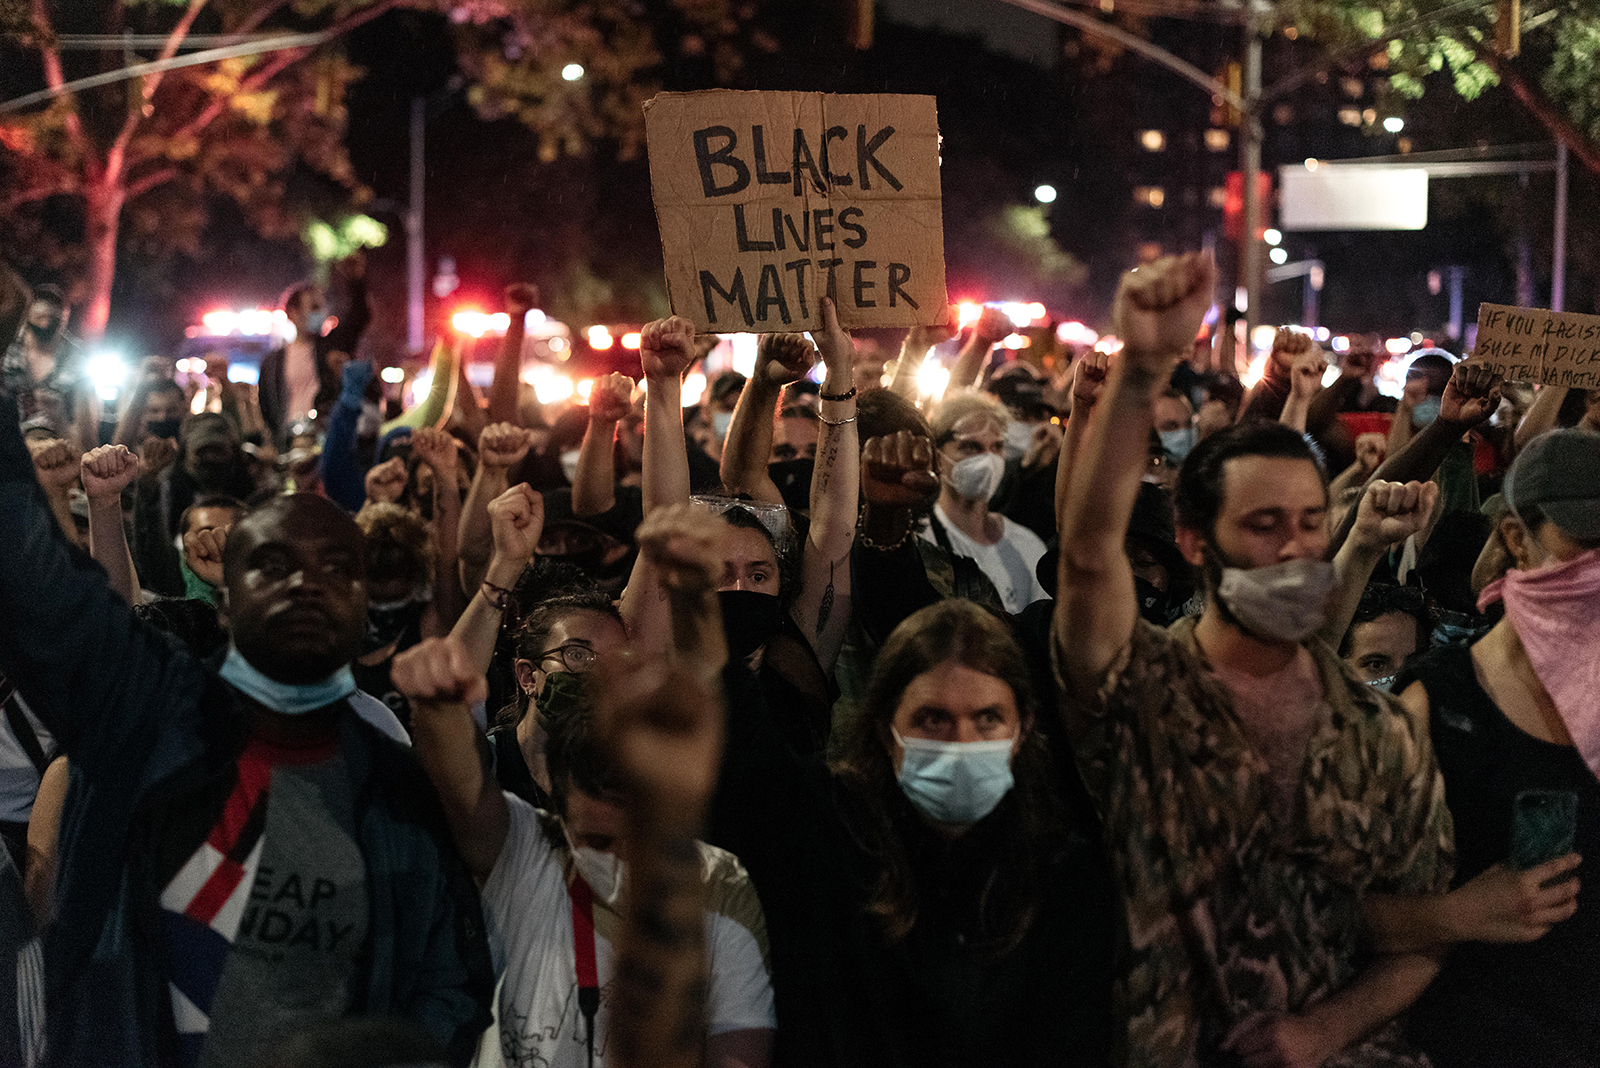 Protesters denouncing systemic racism in law enforcement march in defiance of a citywide curfew on June 5, in New York City.